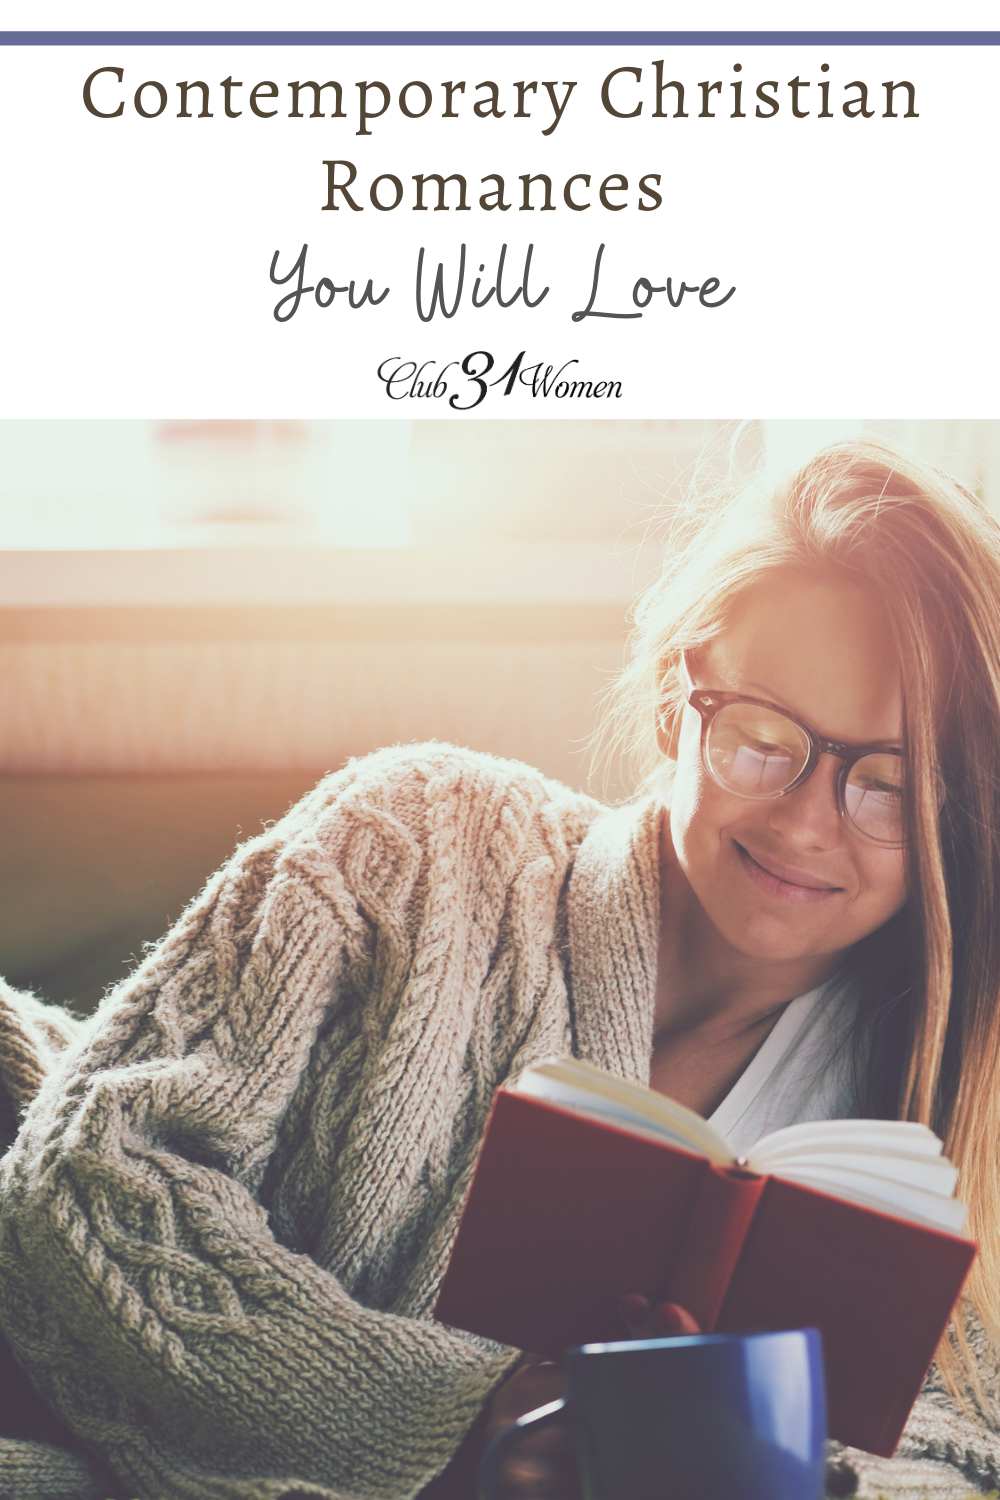 Finding good quality reading can be a challenge!! These Contemporary Christian romances are sure to inspire and captivate you! via @Club31Women